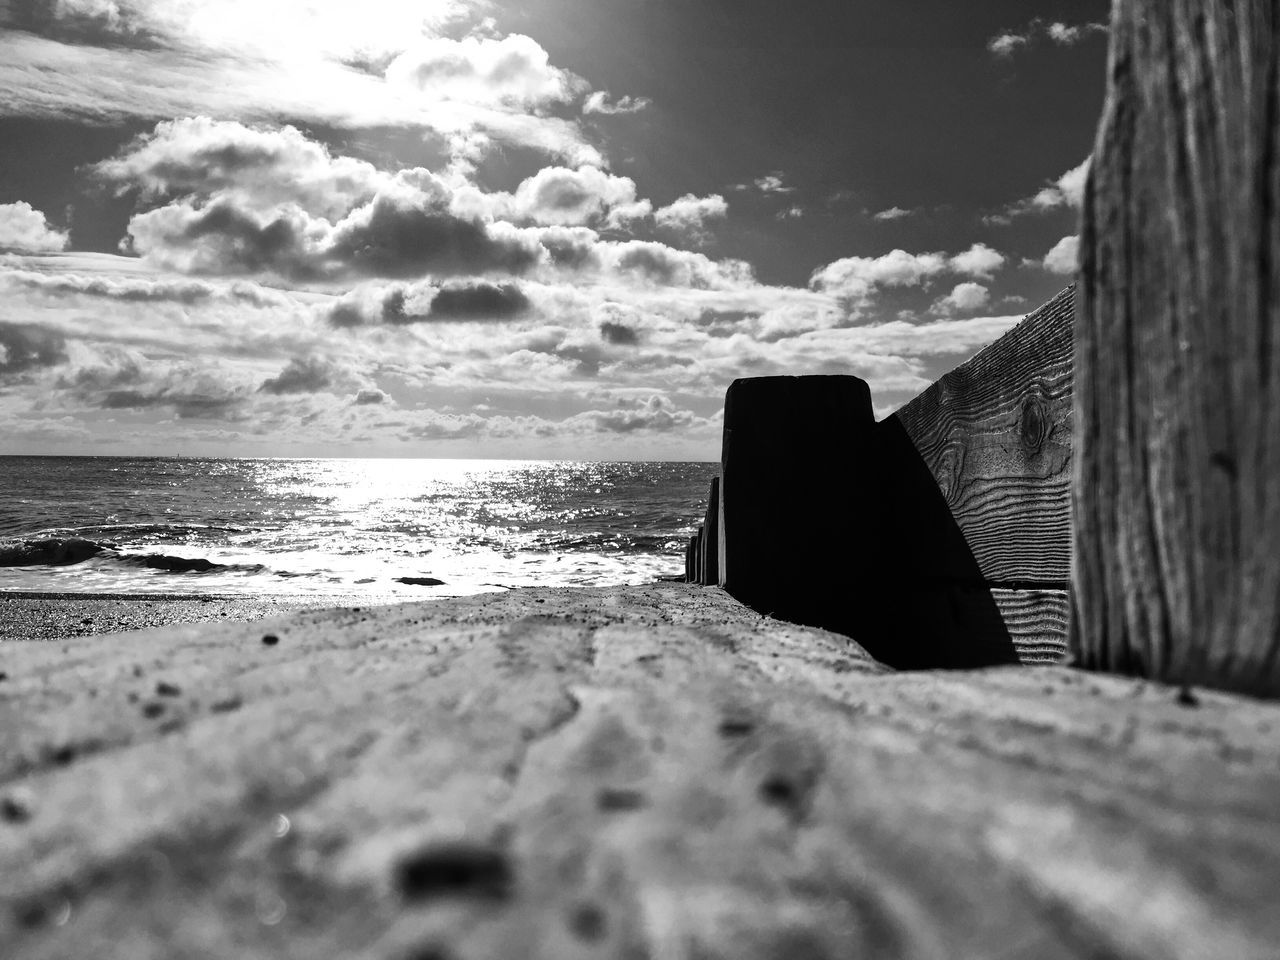 sea, water, sky, cloud - sky, nature, no people, horizon over water, beach, beauty in nature, scenics, day, outdoors, close-up